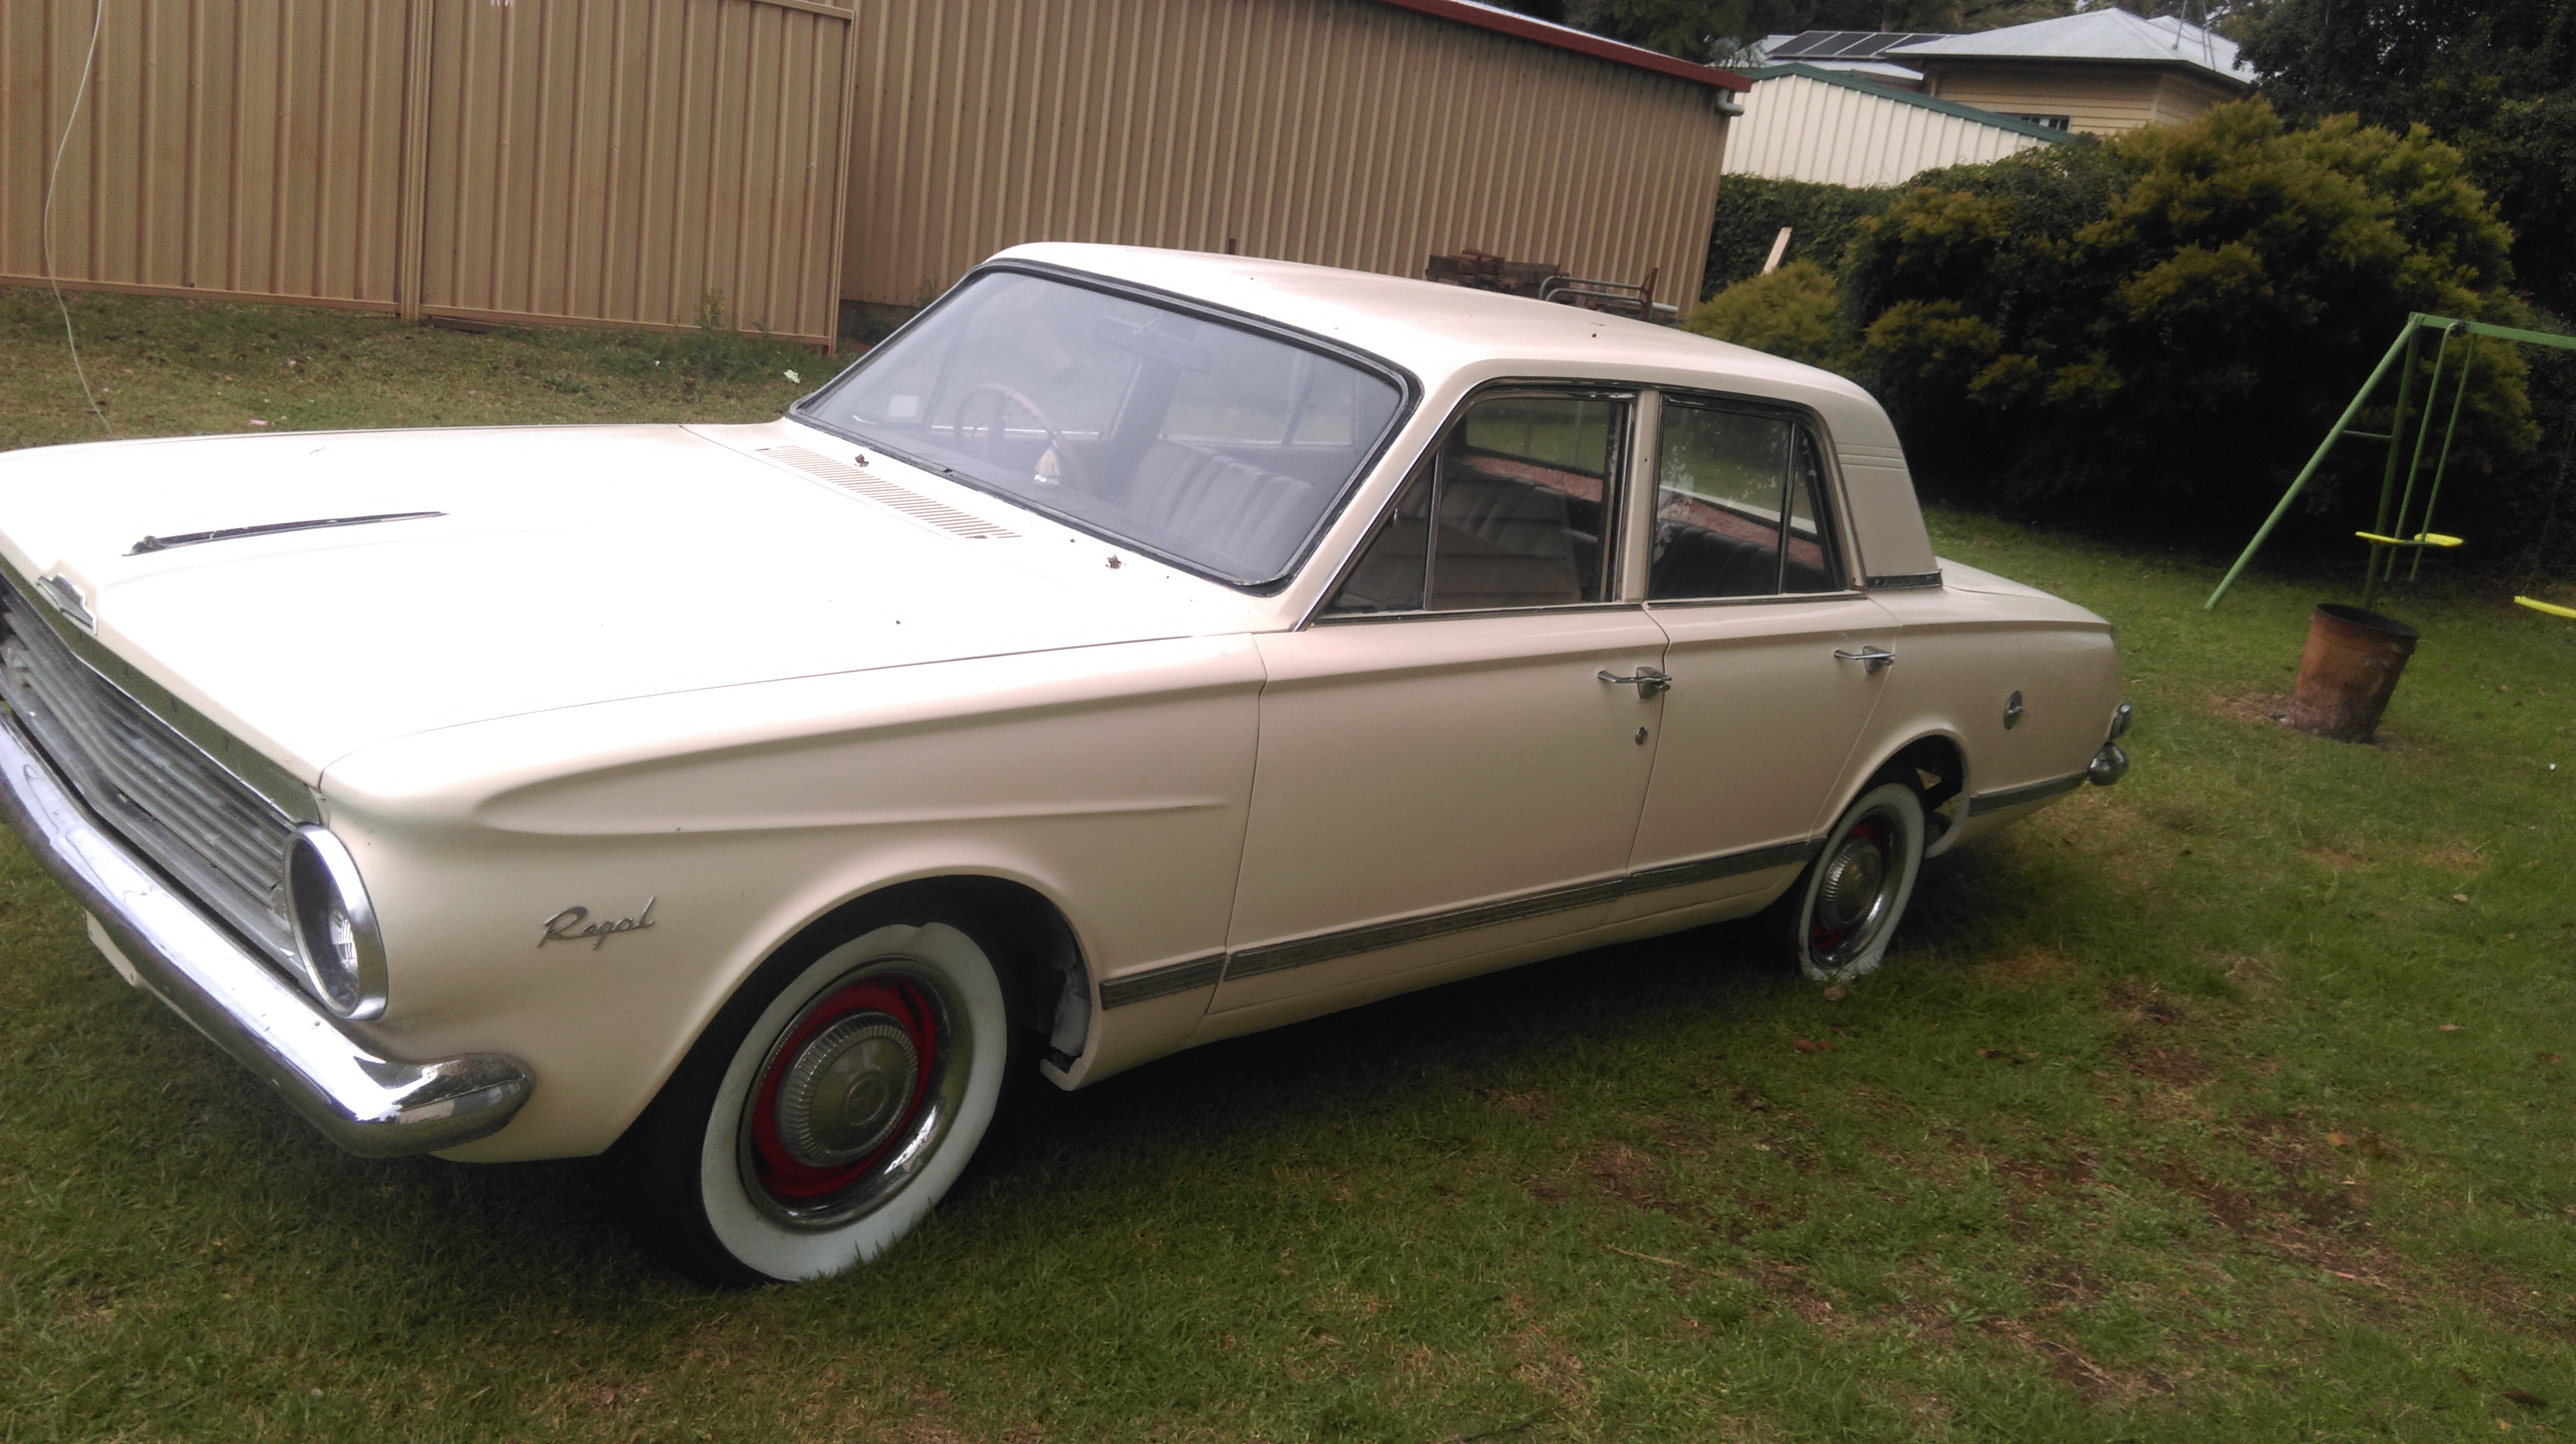 1963 chrysler valiant for sale or swap qld darling downs 2671062